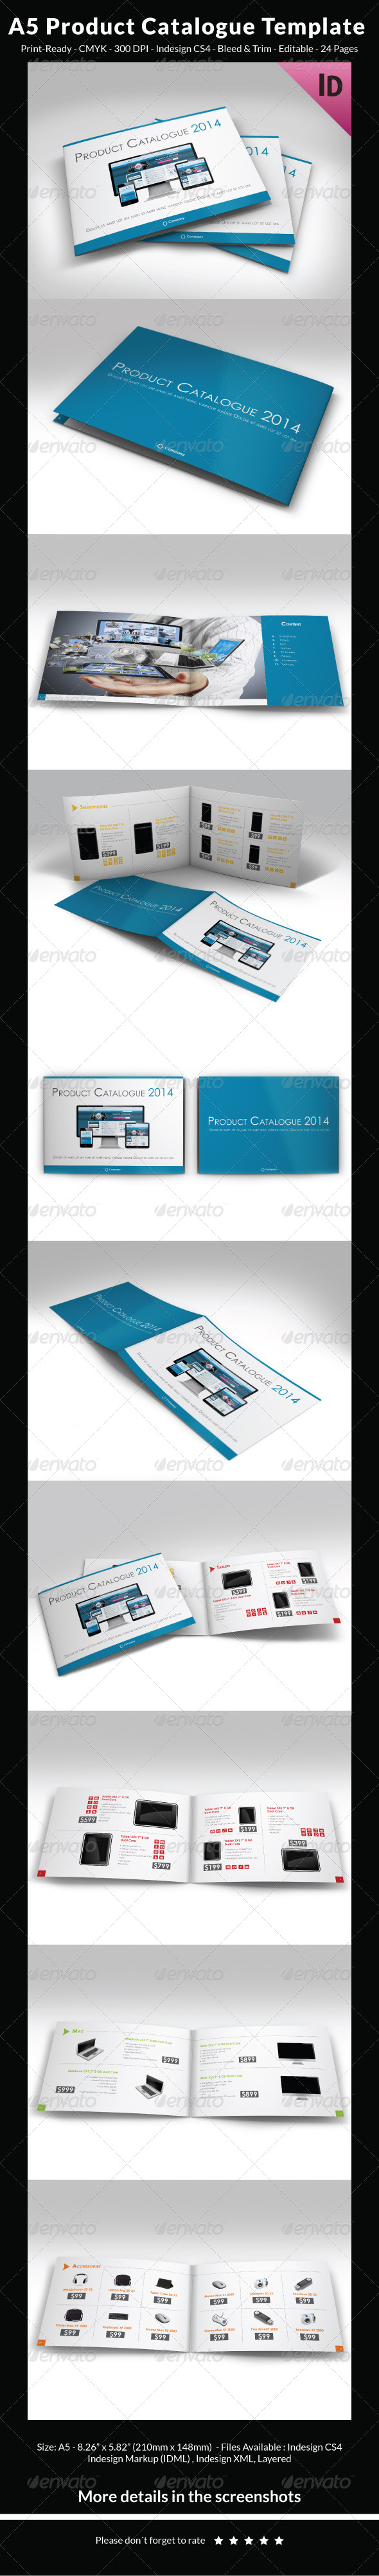 A5 Product Catalogue Template - Catalogs Brochures